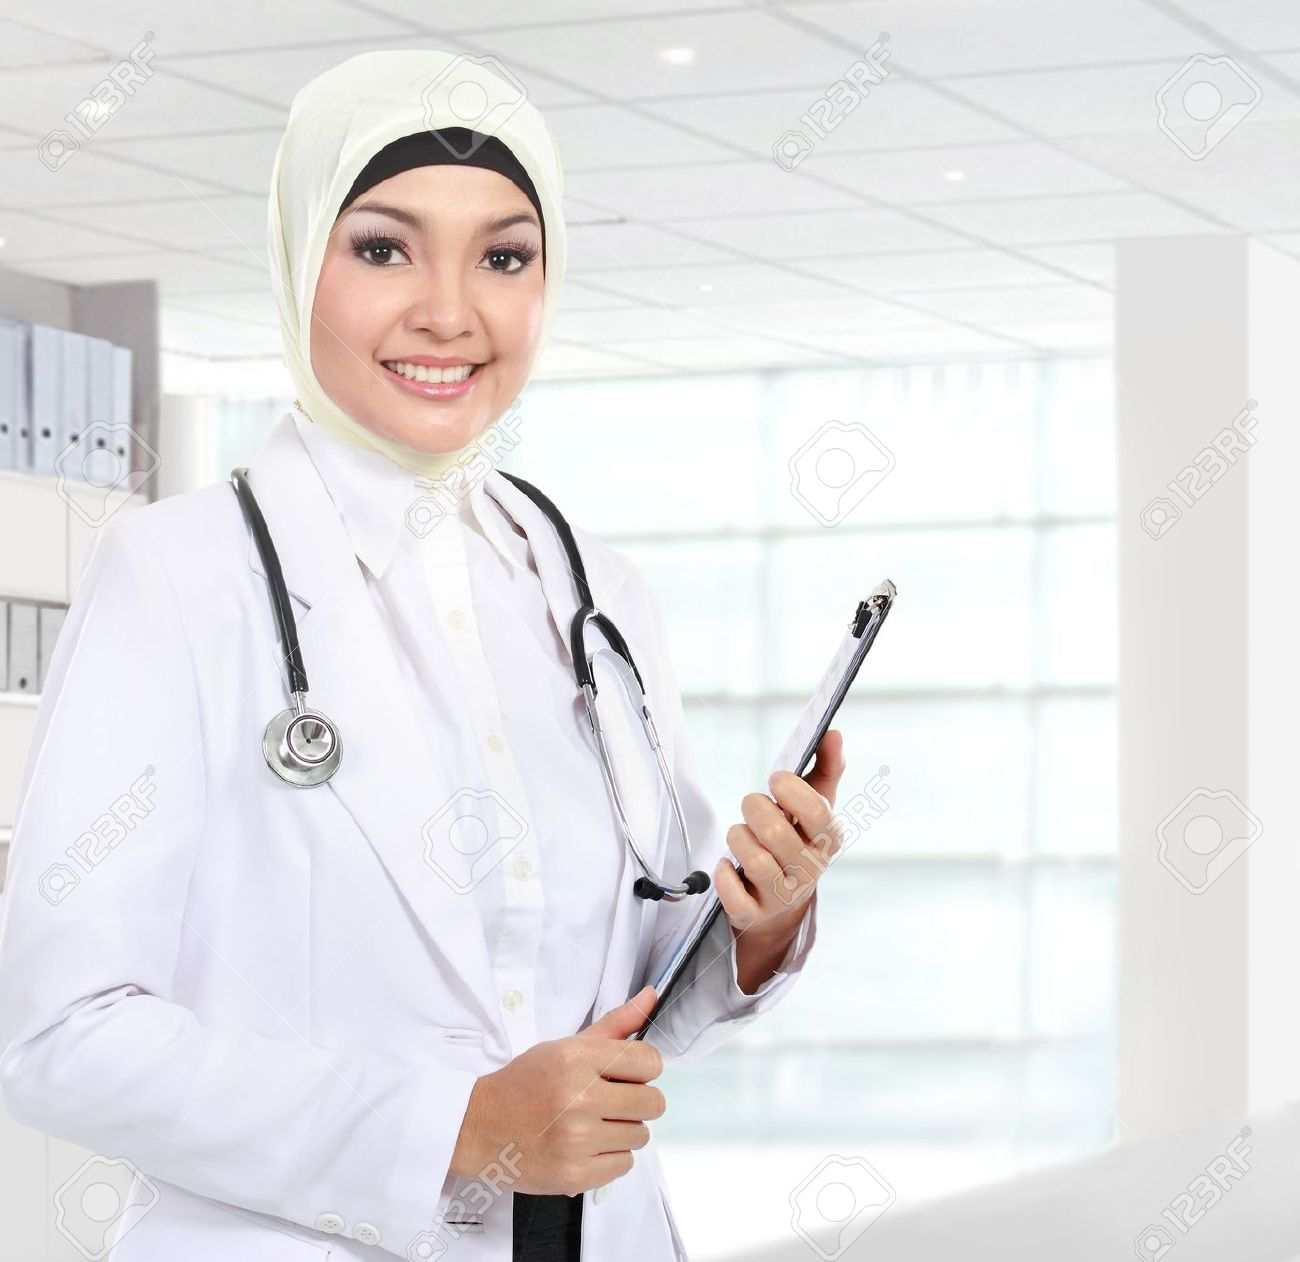 doctors inlet muslim dating site Member benefits health & wellness restaurants entertainment advocacy shopping & groceries travel.